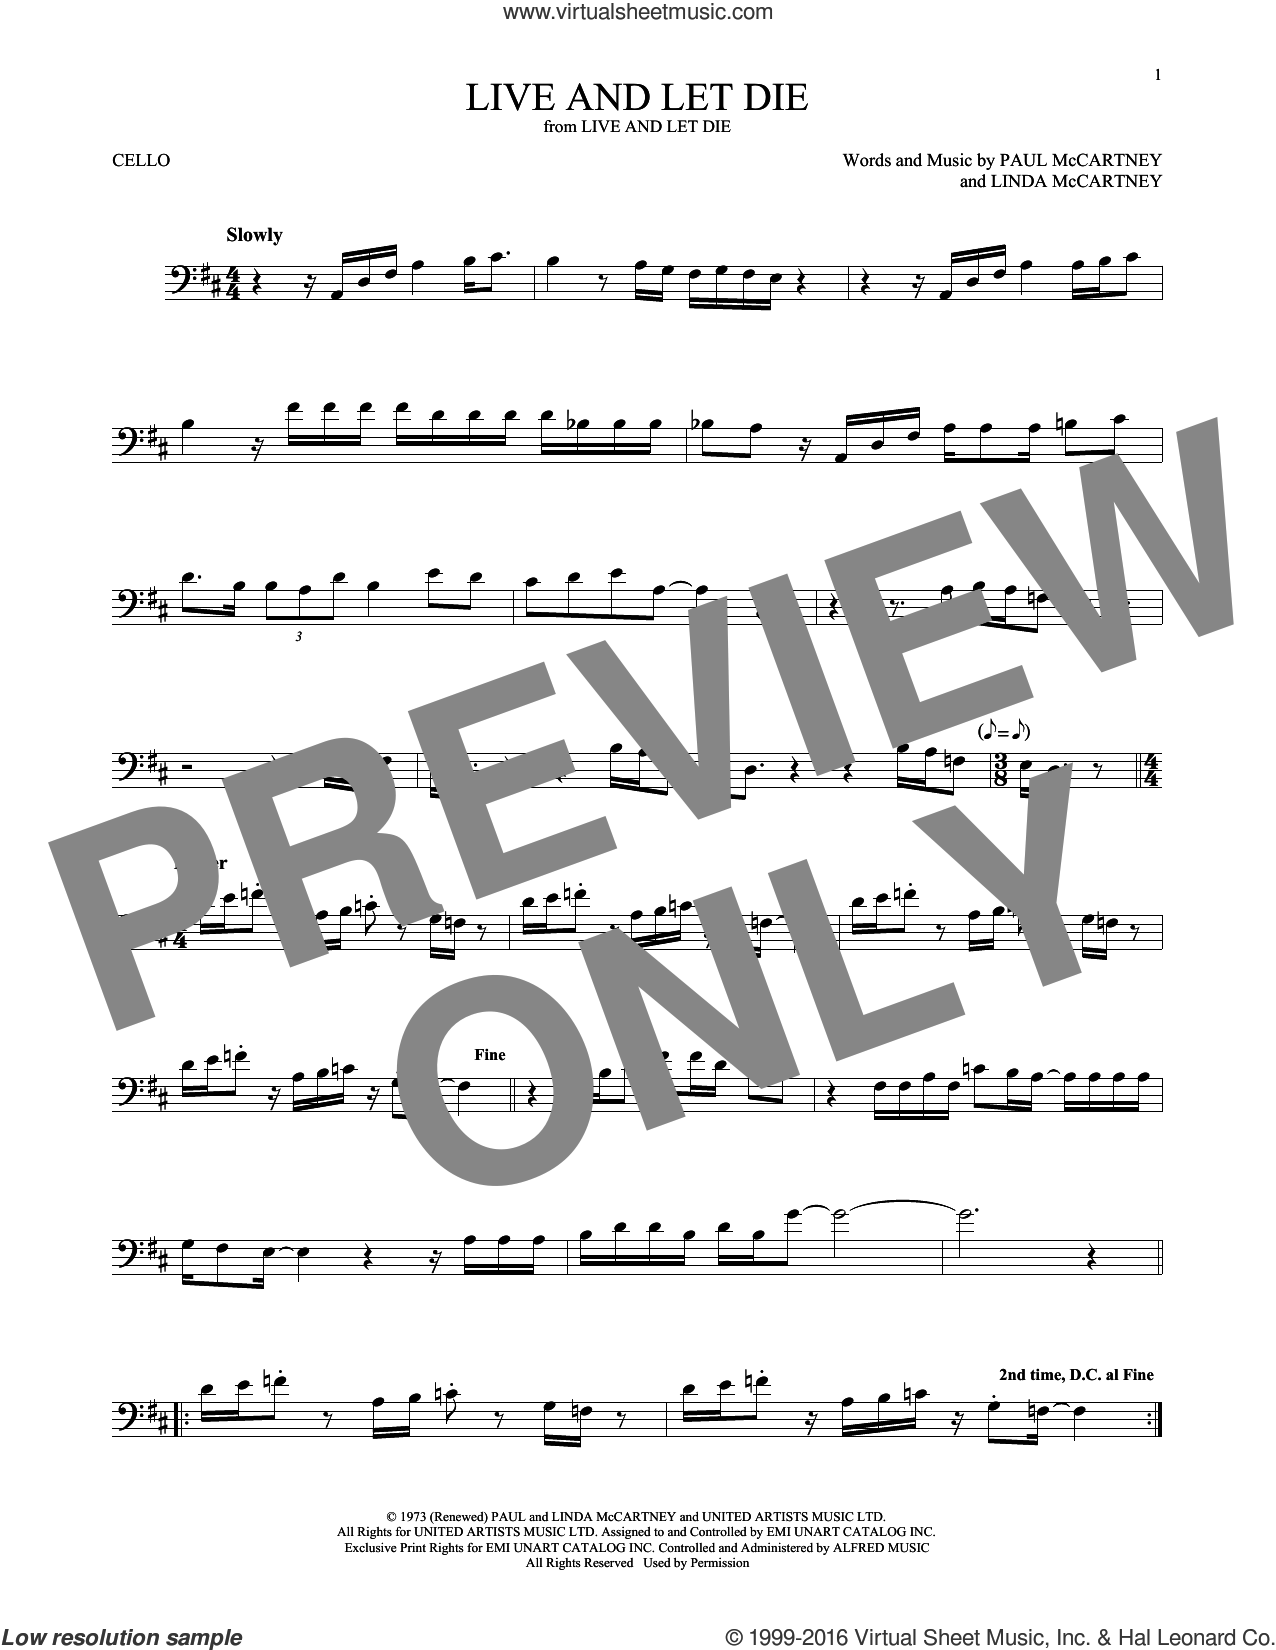 Live And Let Die sheet music for cello solo by Wings, Linda McCartney and Paul McCartney, intermediate skill level